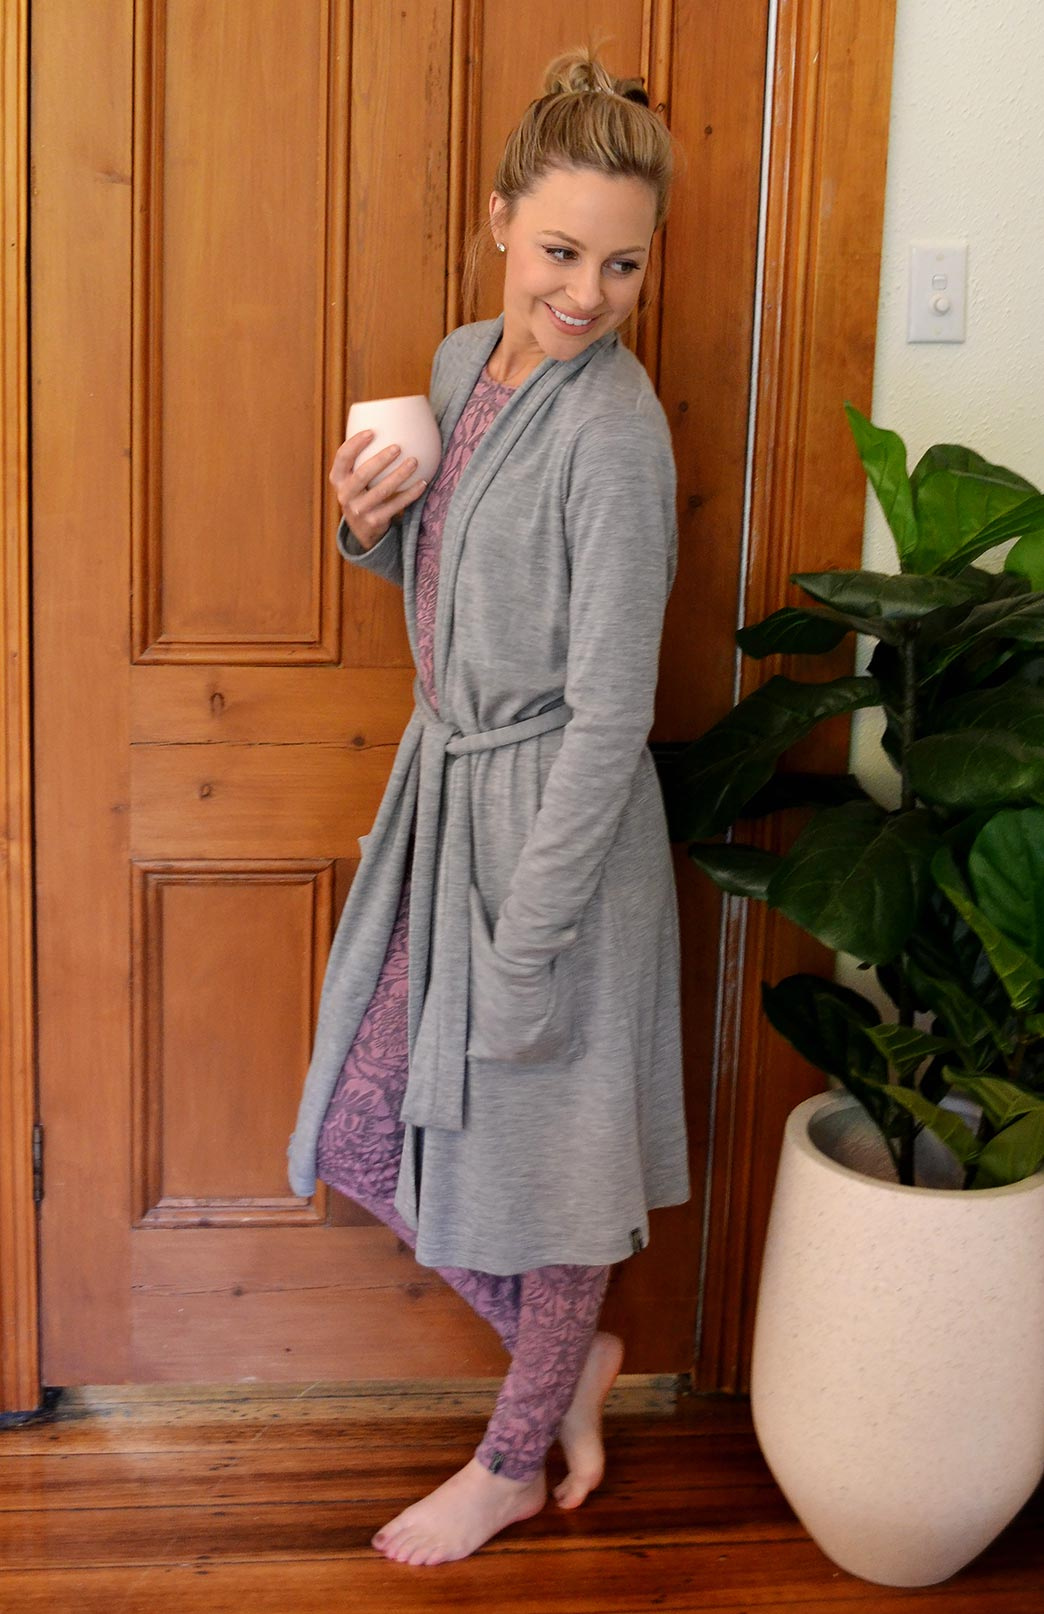 Dressing Gown - Women's Soft Grey Superfine Merino Wool Dressing Gown with Tie and Side Pockets - Smitten Merino Tasmania Australia